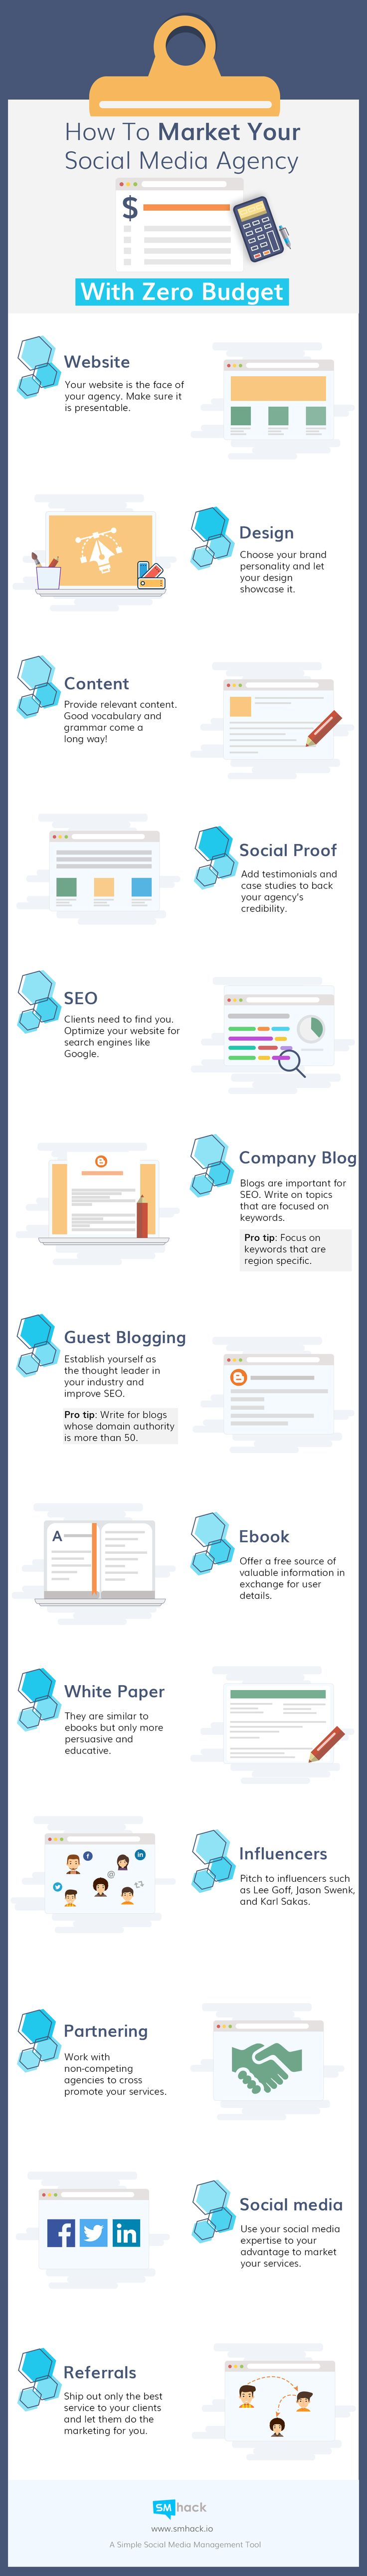 How To Market Your Social Media Agency With Zero Budget - #[Infographic]